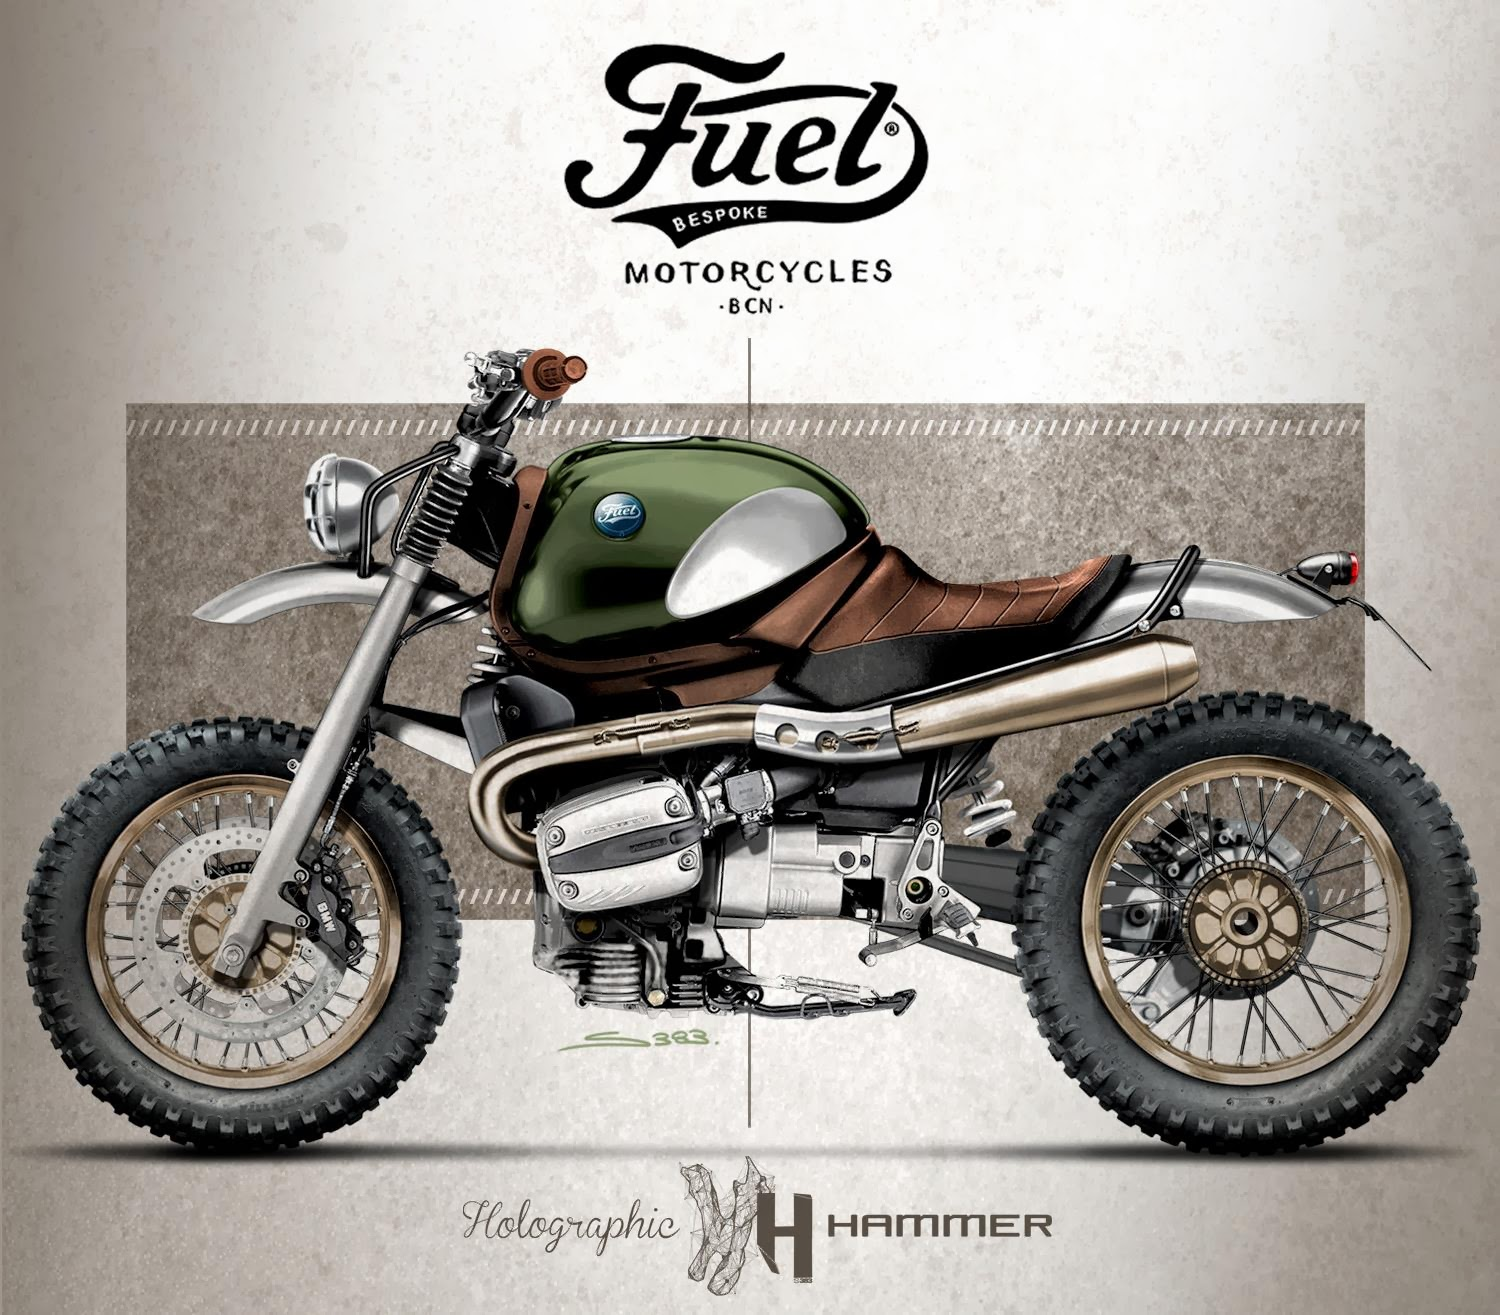 Racing Caf 232 Caf 232 Racer Concepts Bmw R 1100 R 2 By Holographic Hammer